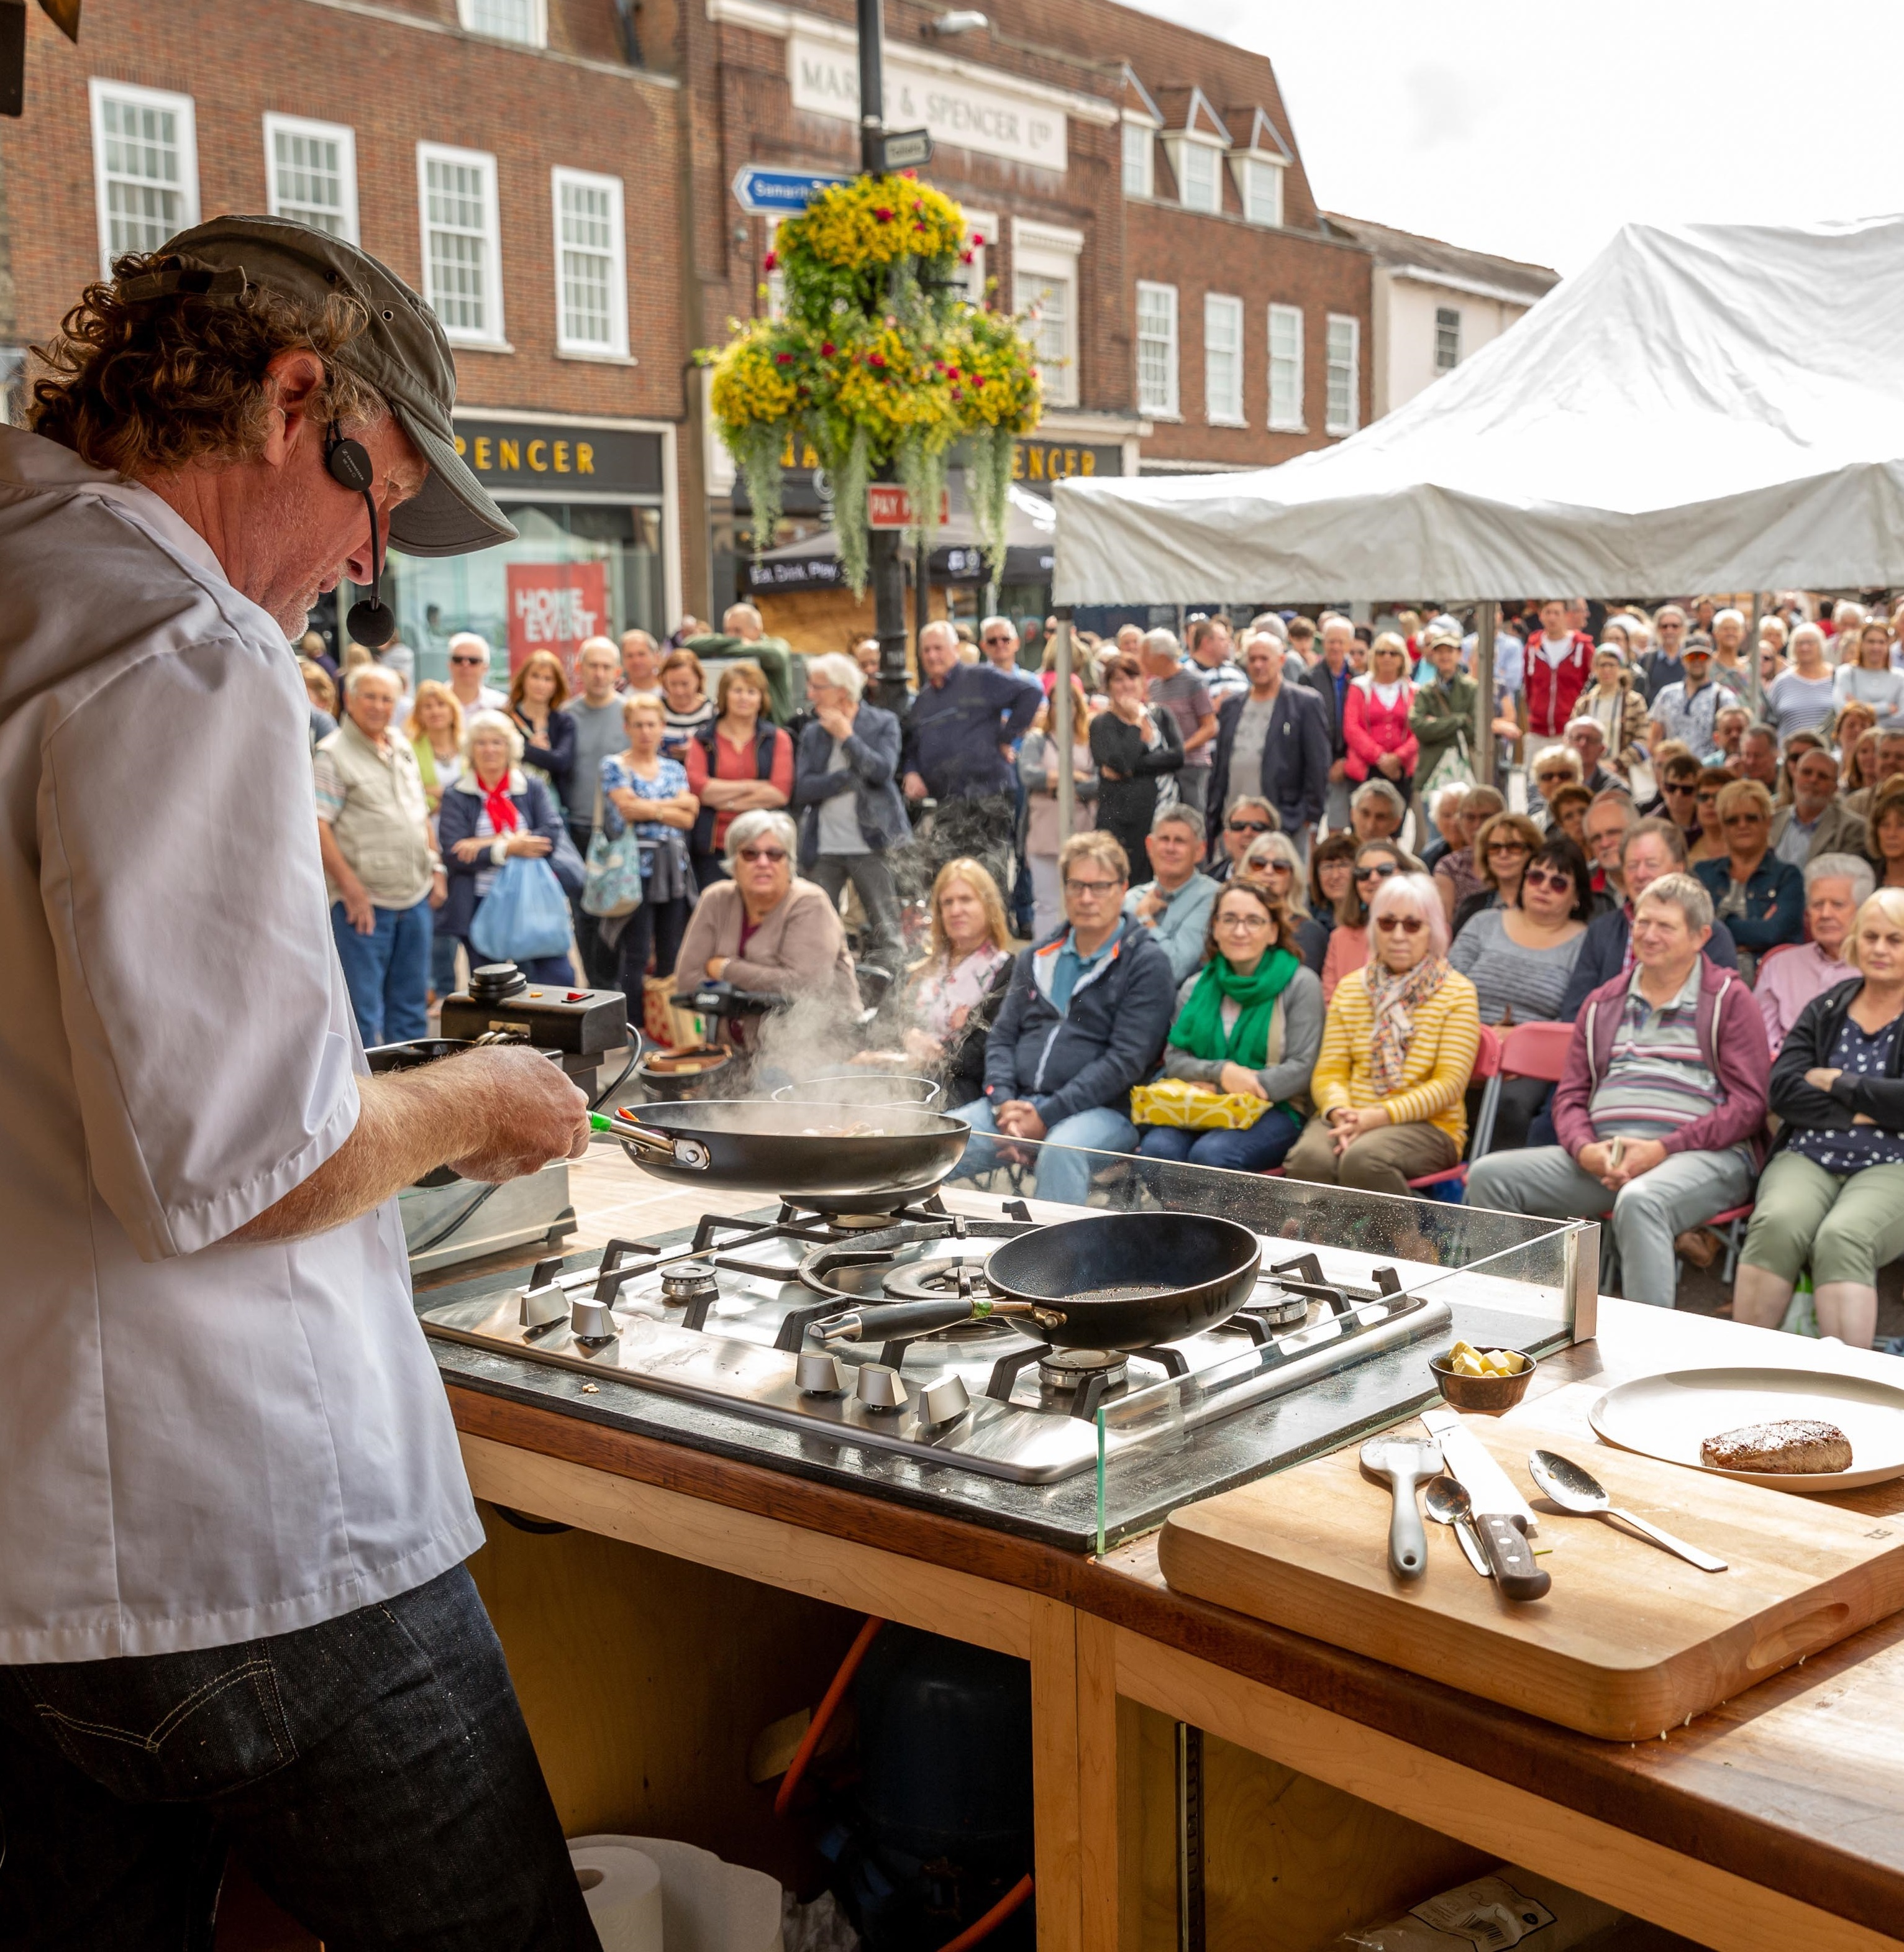 Our Bury St Edmunds Food and Drink Festival 2019 - August 25 & 26